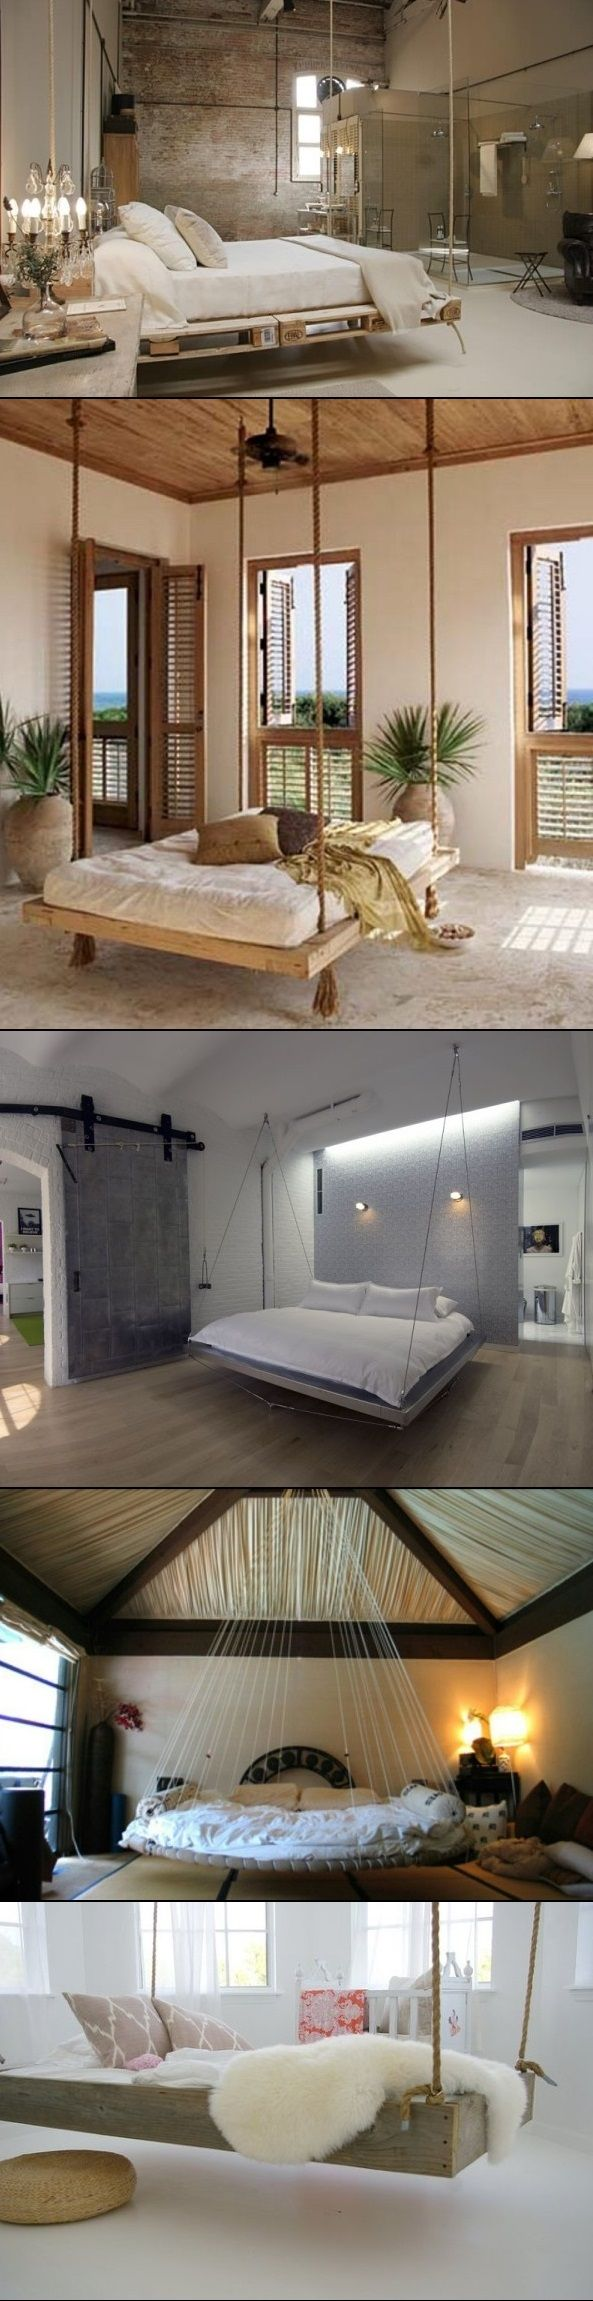 DIY hanging bedroom beds. More